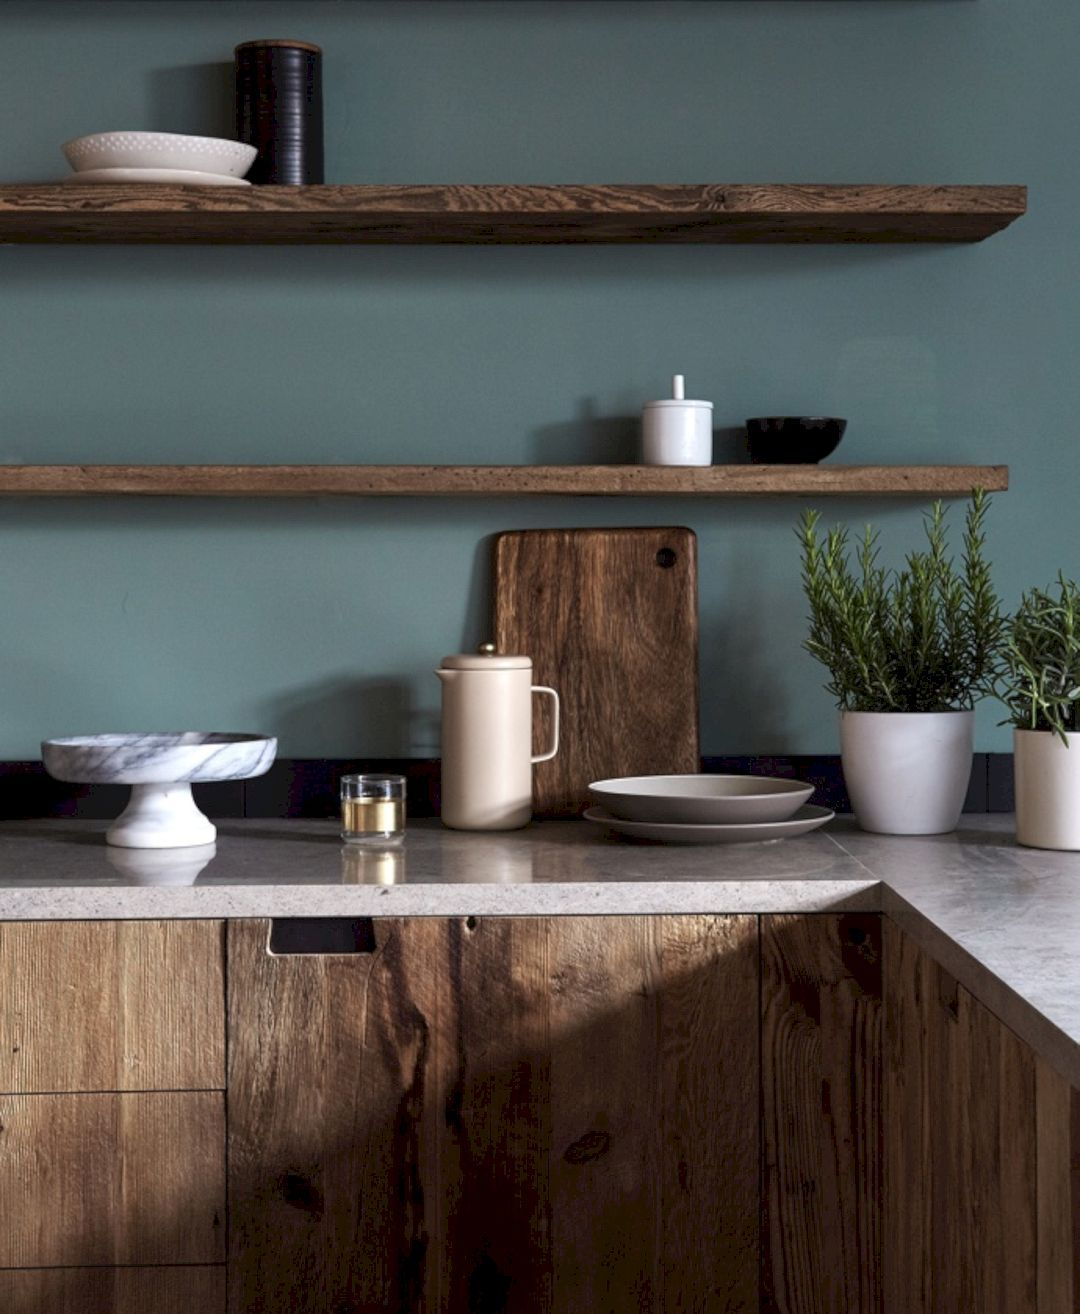 Most Beautiful Scandinavian Style Interior Ideas | Gorgeous Interior on blue kitchen color schemes, blue dining room ideas, kitchen wall paint ideas, blue room walls ideas, blue paint ideas, blue kitchen decor, blue kitchen cabinets, blue kitchen countertops, blue shower ideas, blue and white kitchen, blue kitchen wall colors,